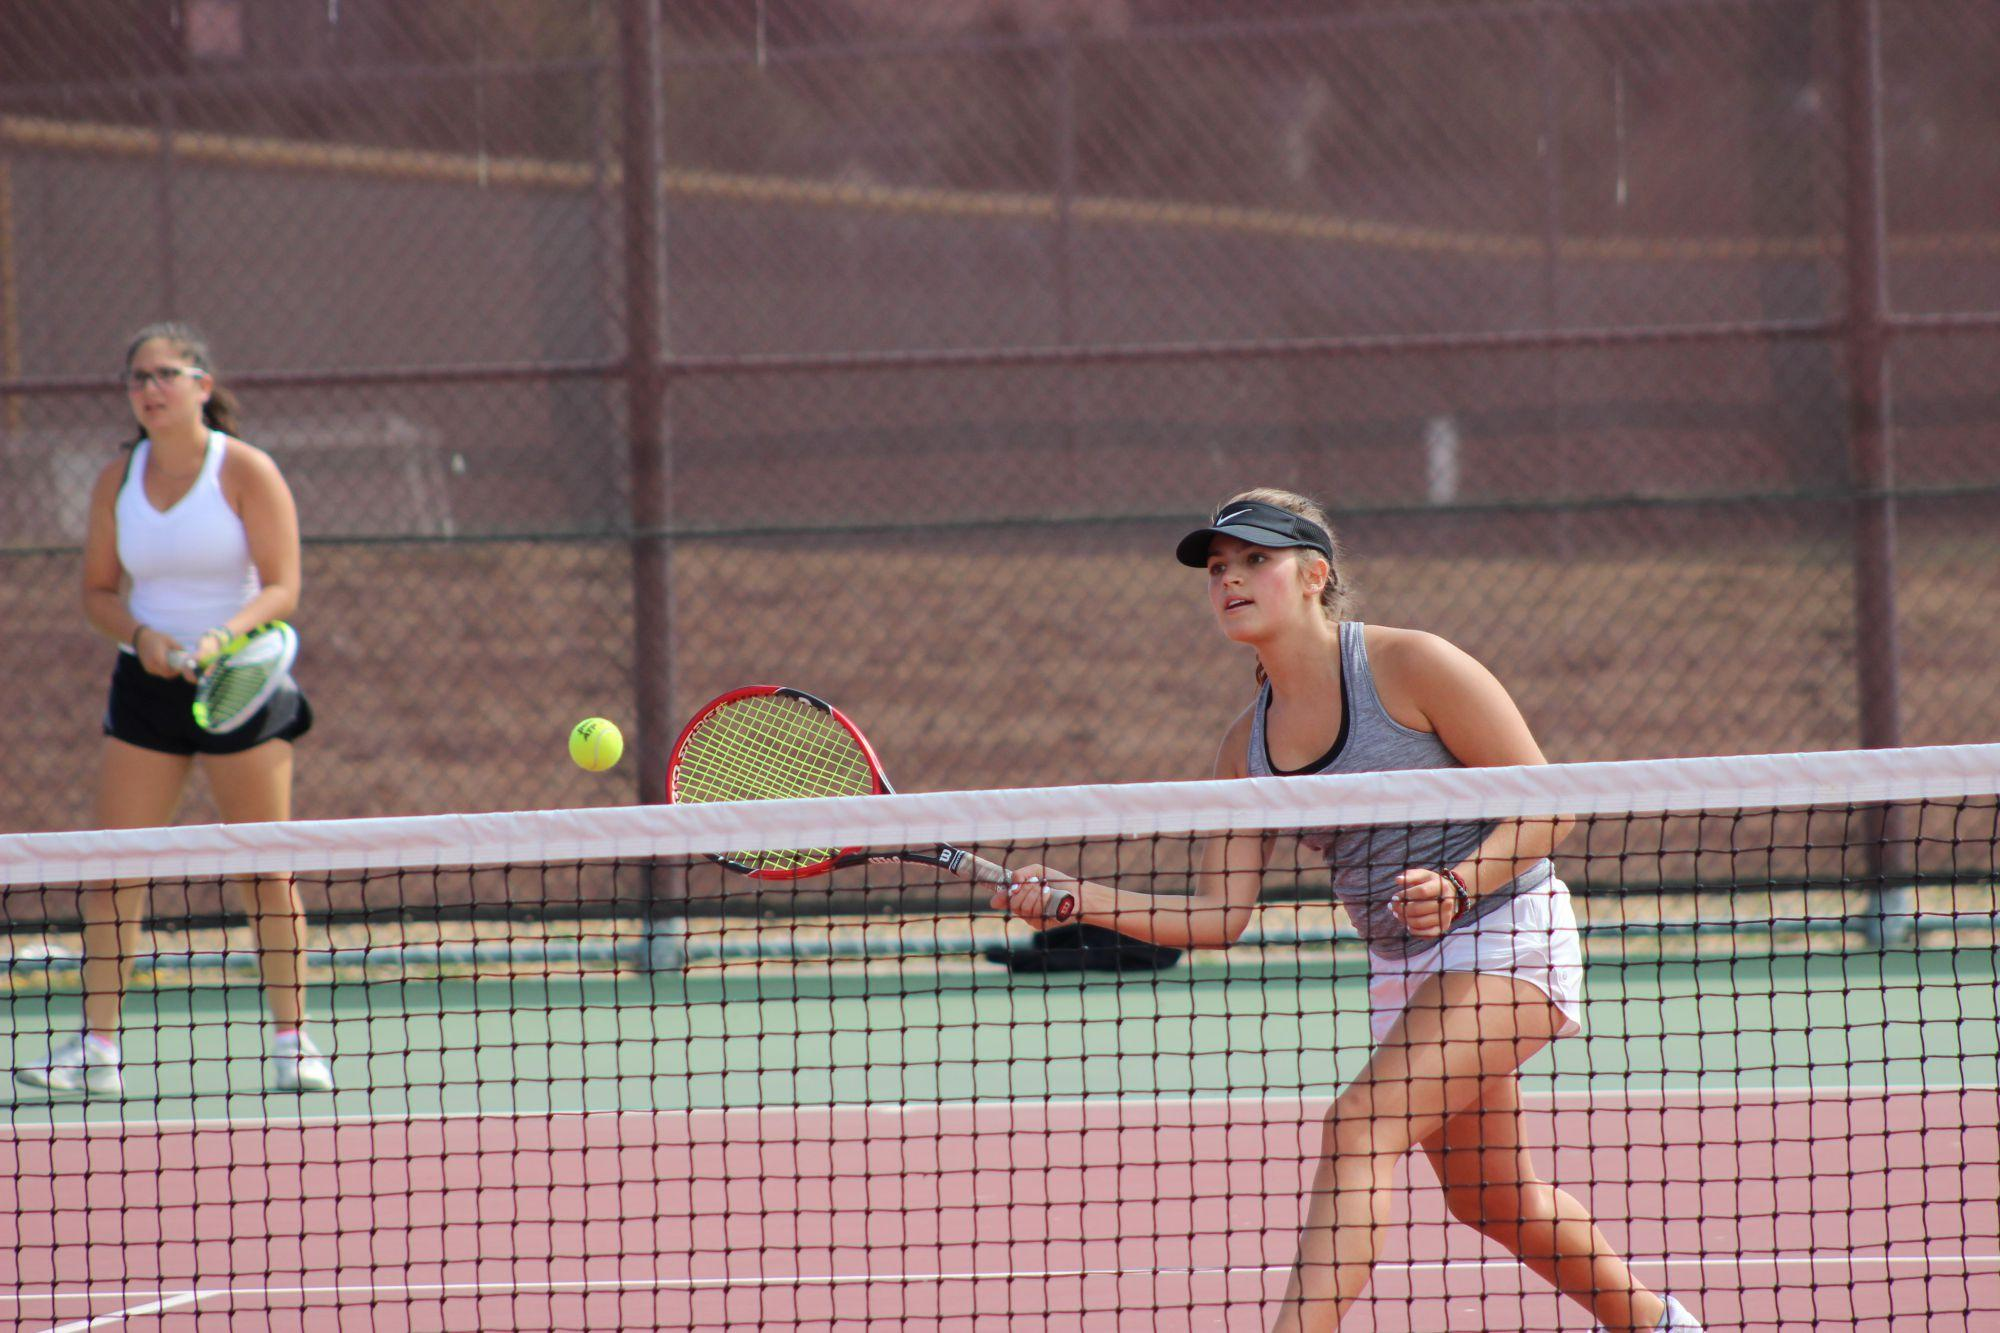 Junior Lindsay Dubin practices her forehand volley during warmups